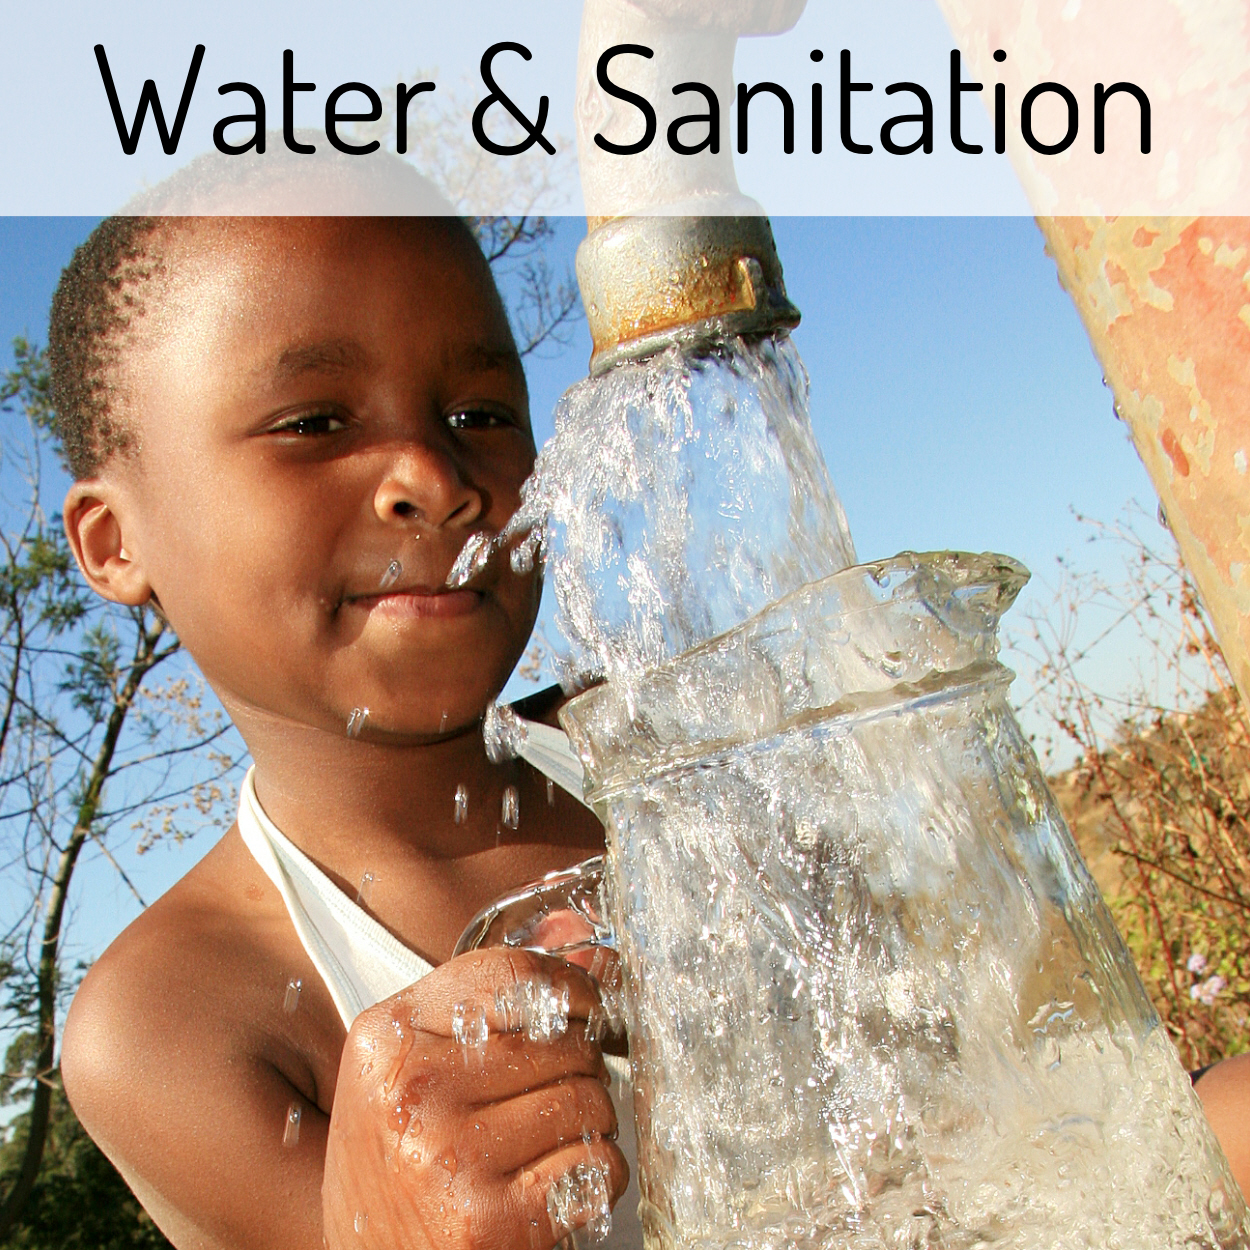 water environment and sanitation Policy statement the university of minnesota (the university) is committed to providing a safe and healthy environment for its students, faculty, staff and visitors.